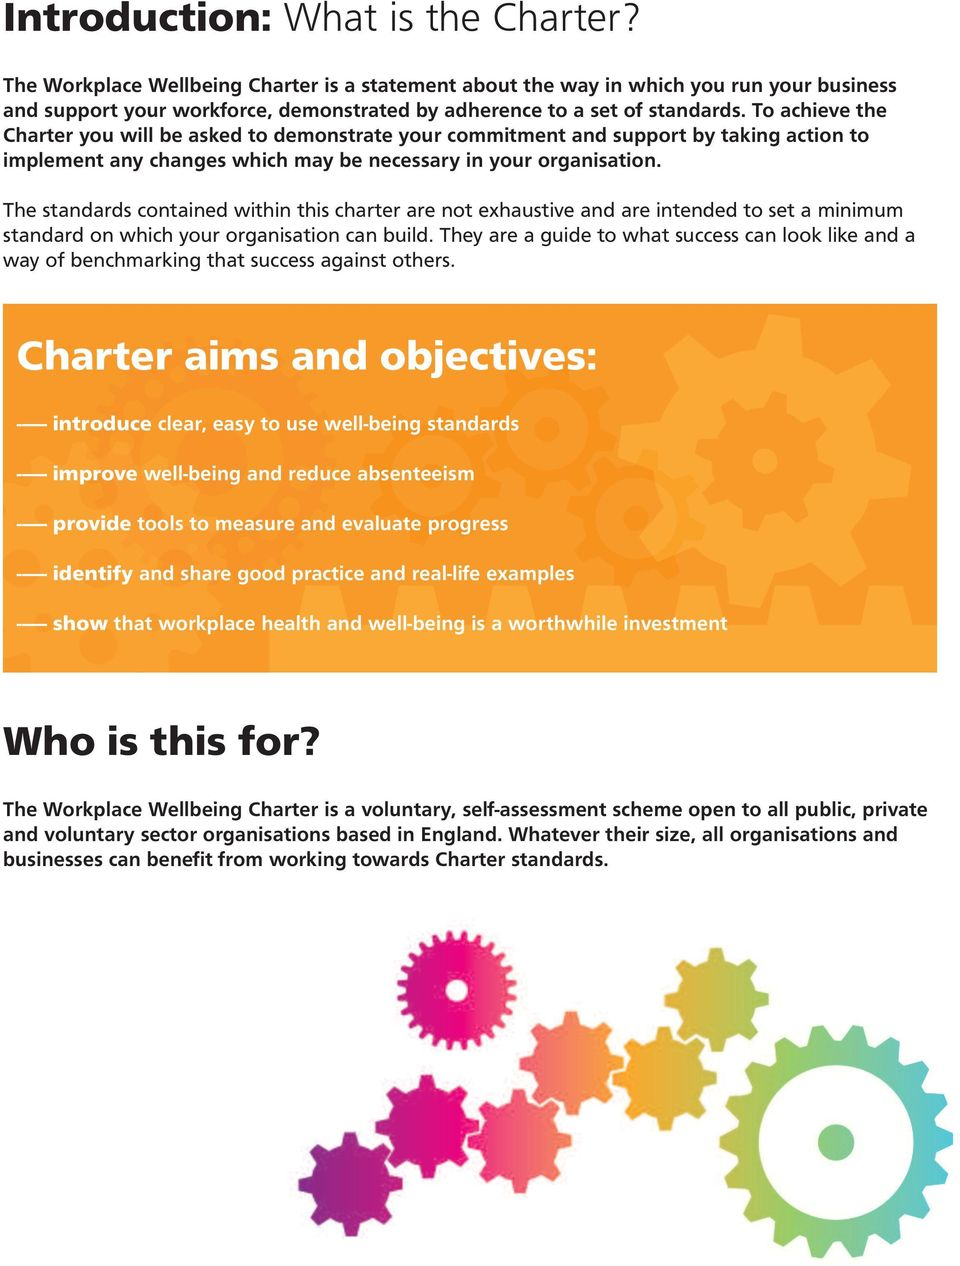 To achieve the Charter you will be asked to demonstrate your commitment and support by taking action to implement any changes which may be necessary in your organisation.